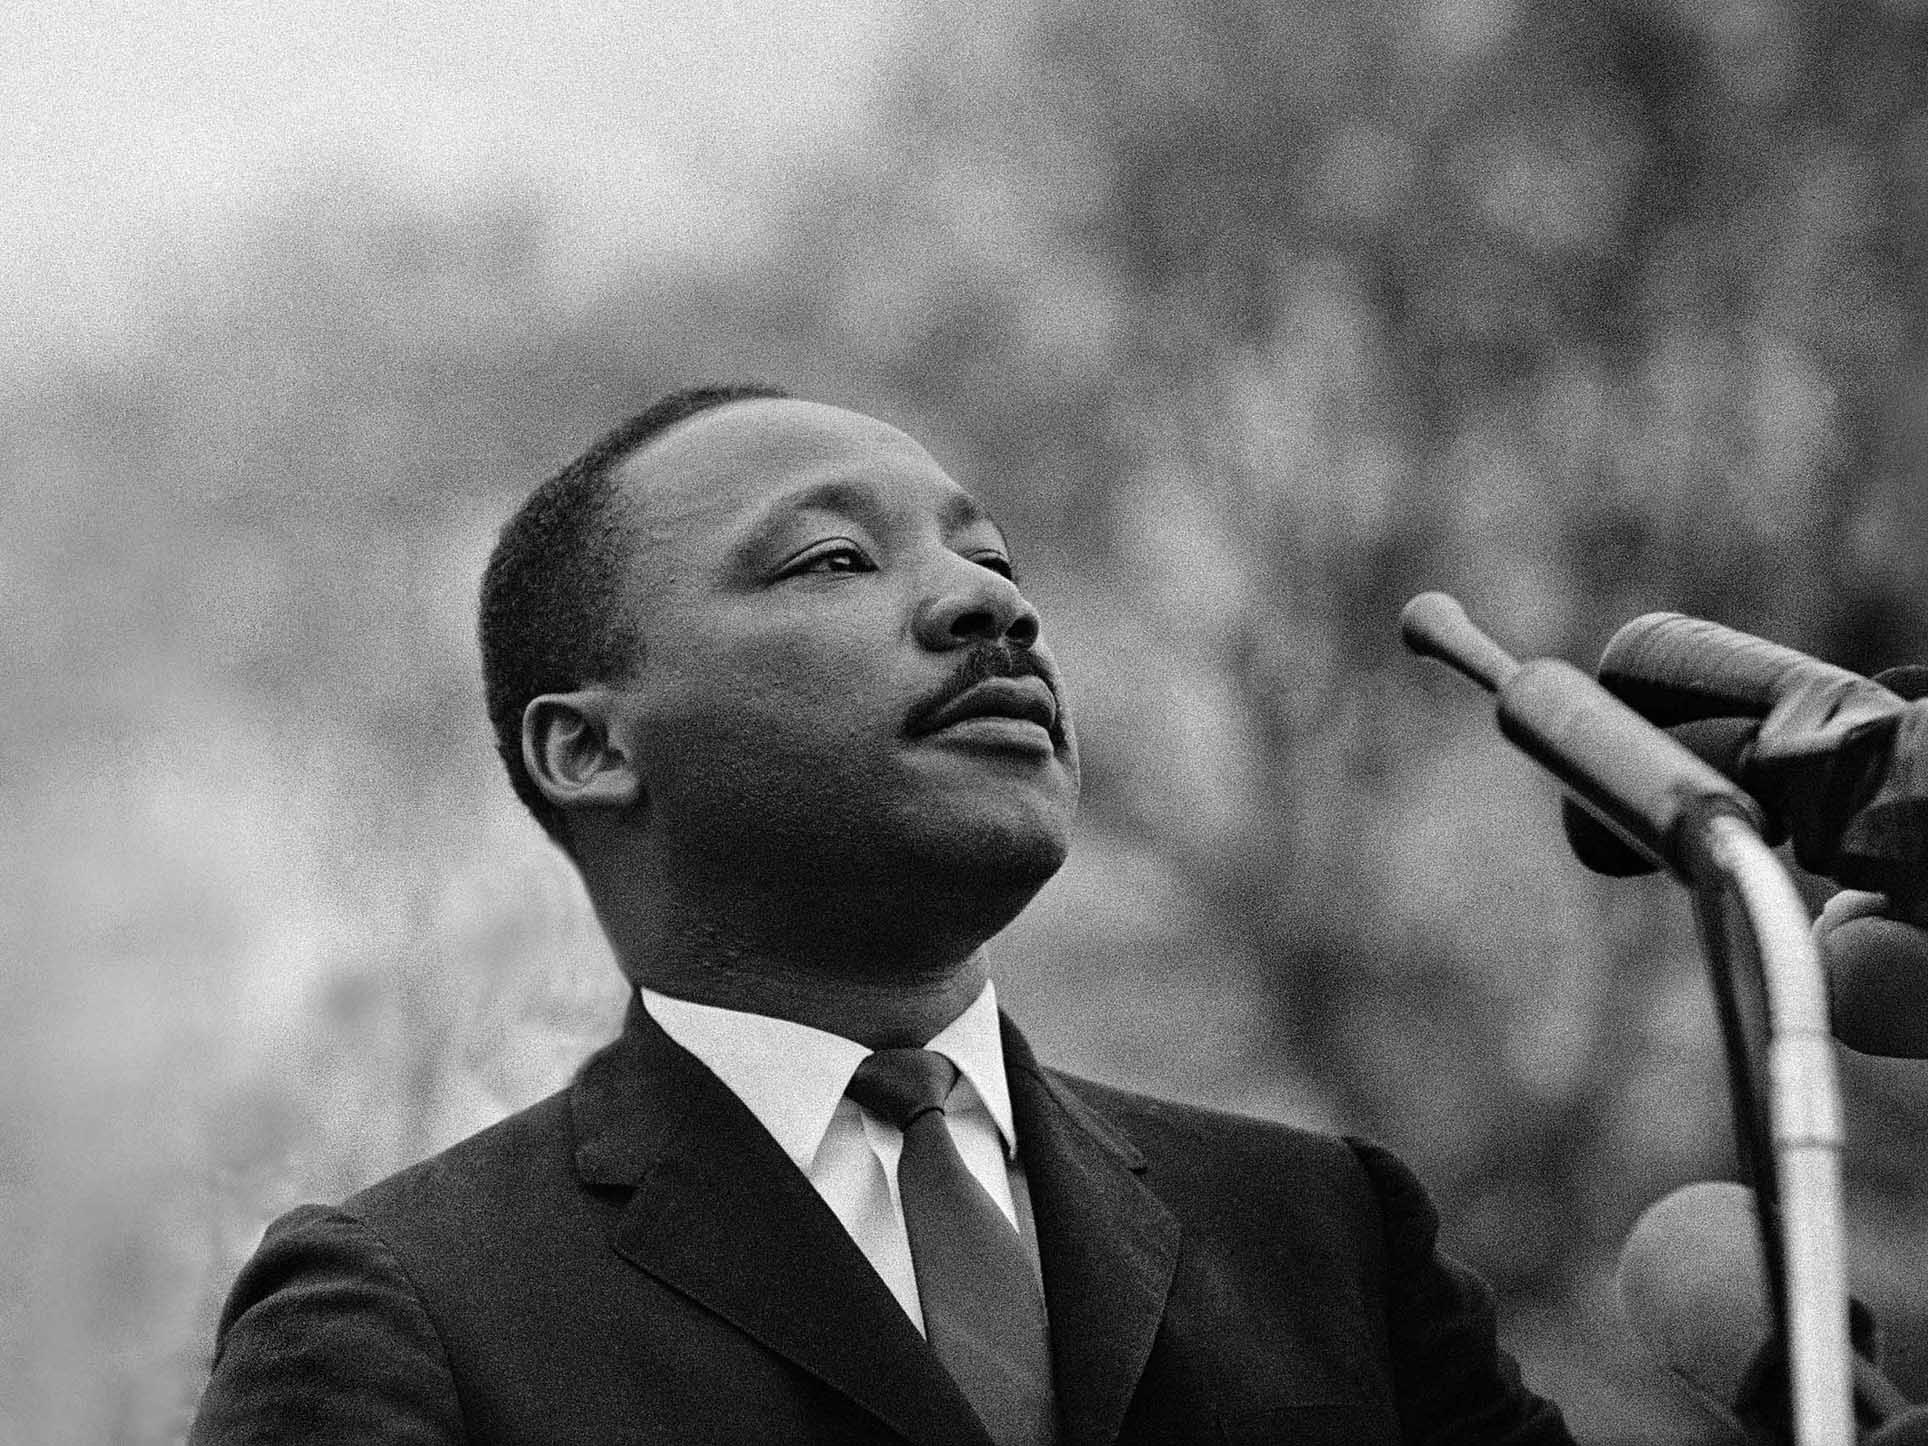 Dr. Martin Luther King, Jr. Image via Scholastic.